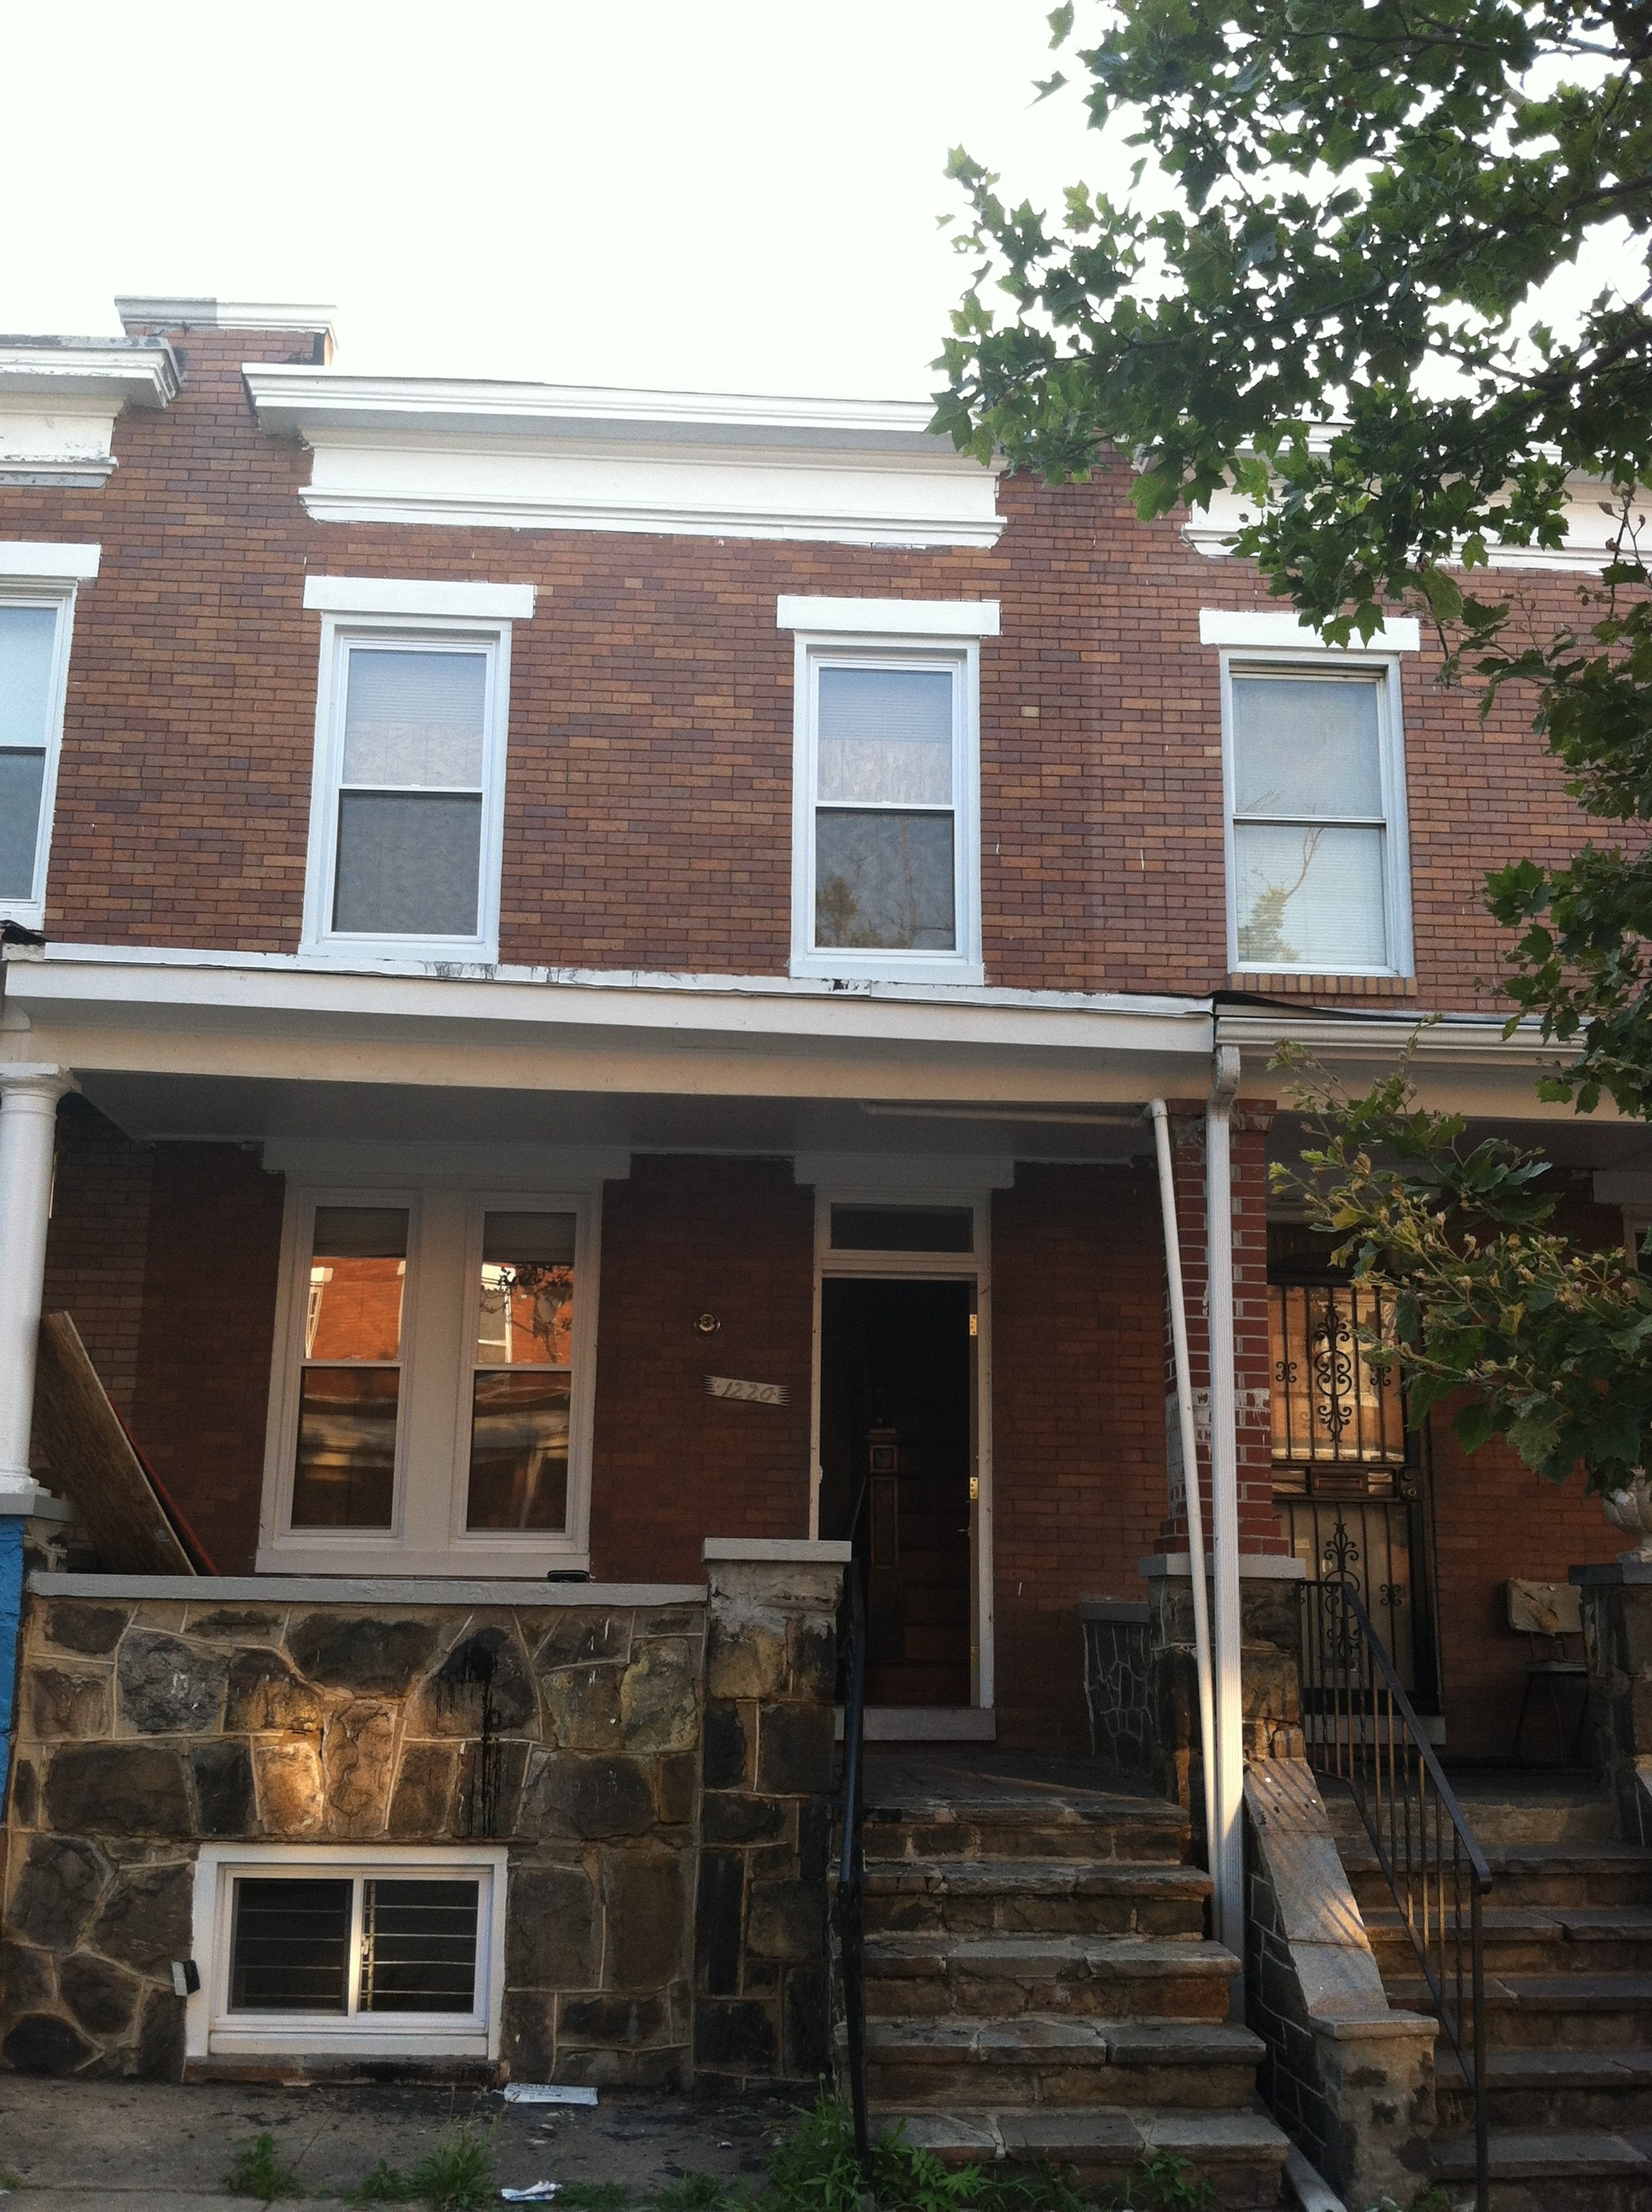 1220 n potomac st baltimore md 21213 3 bedroom apartment for rent for 900 month zumper